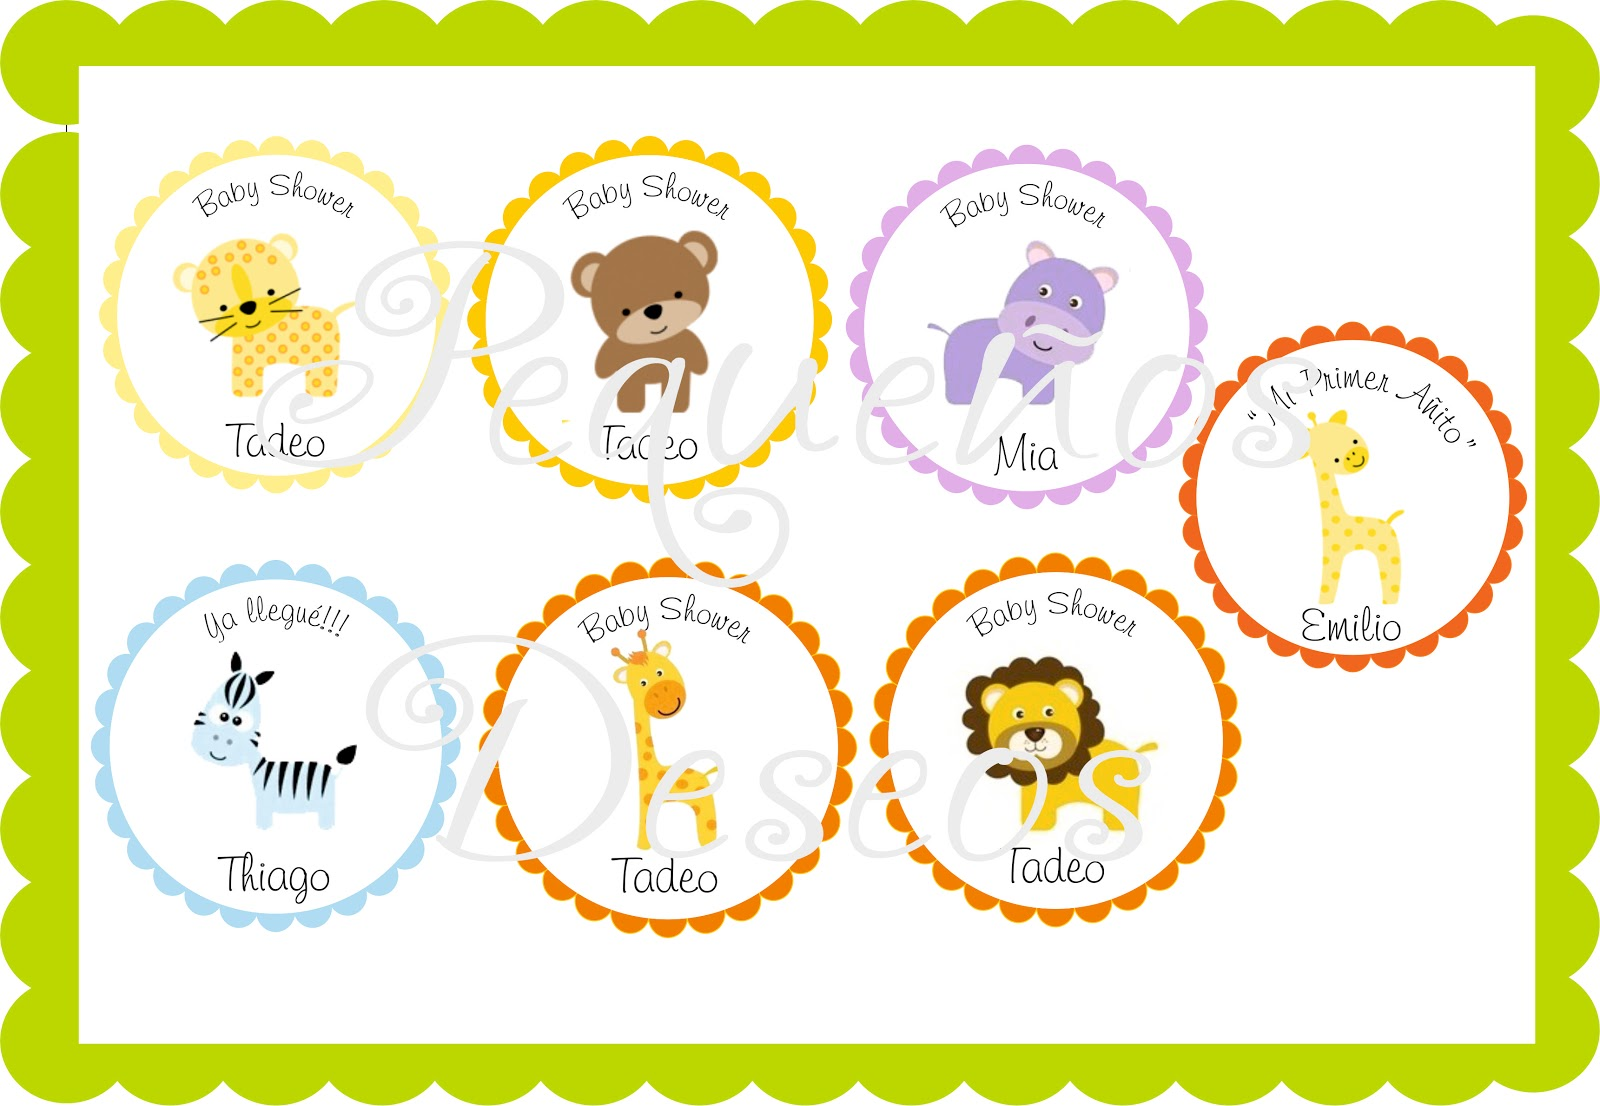 Animalitos para baby shower - Imagui